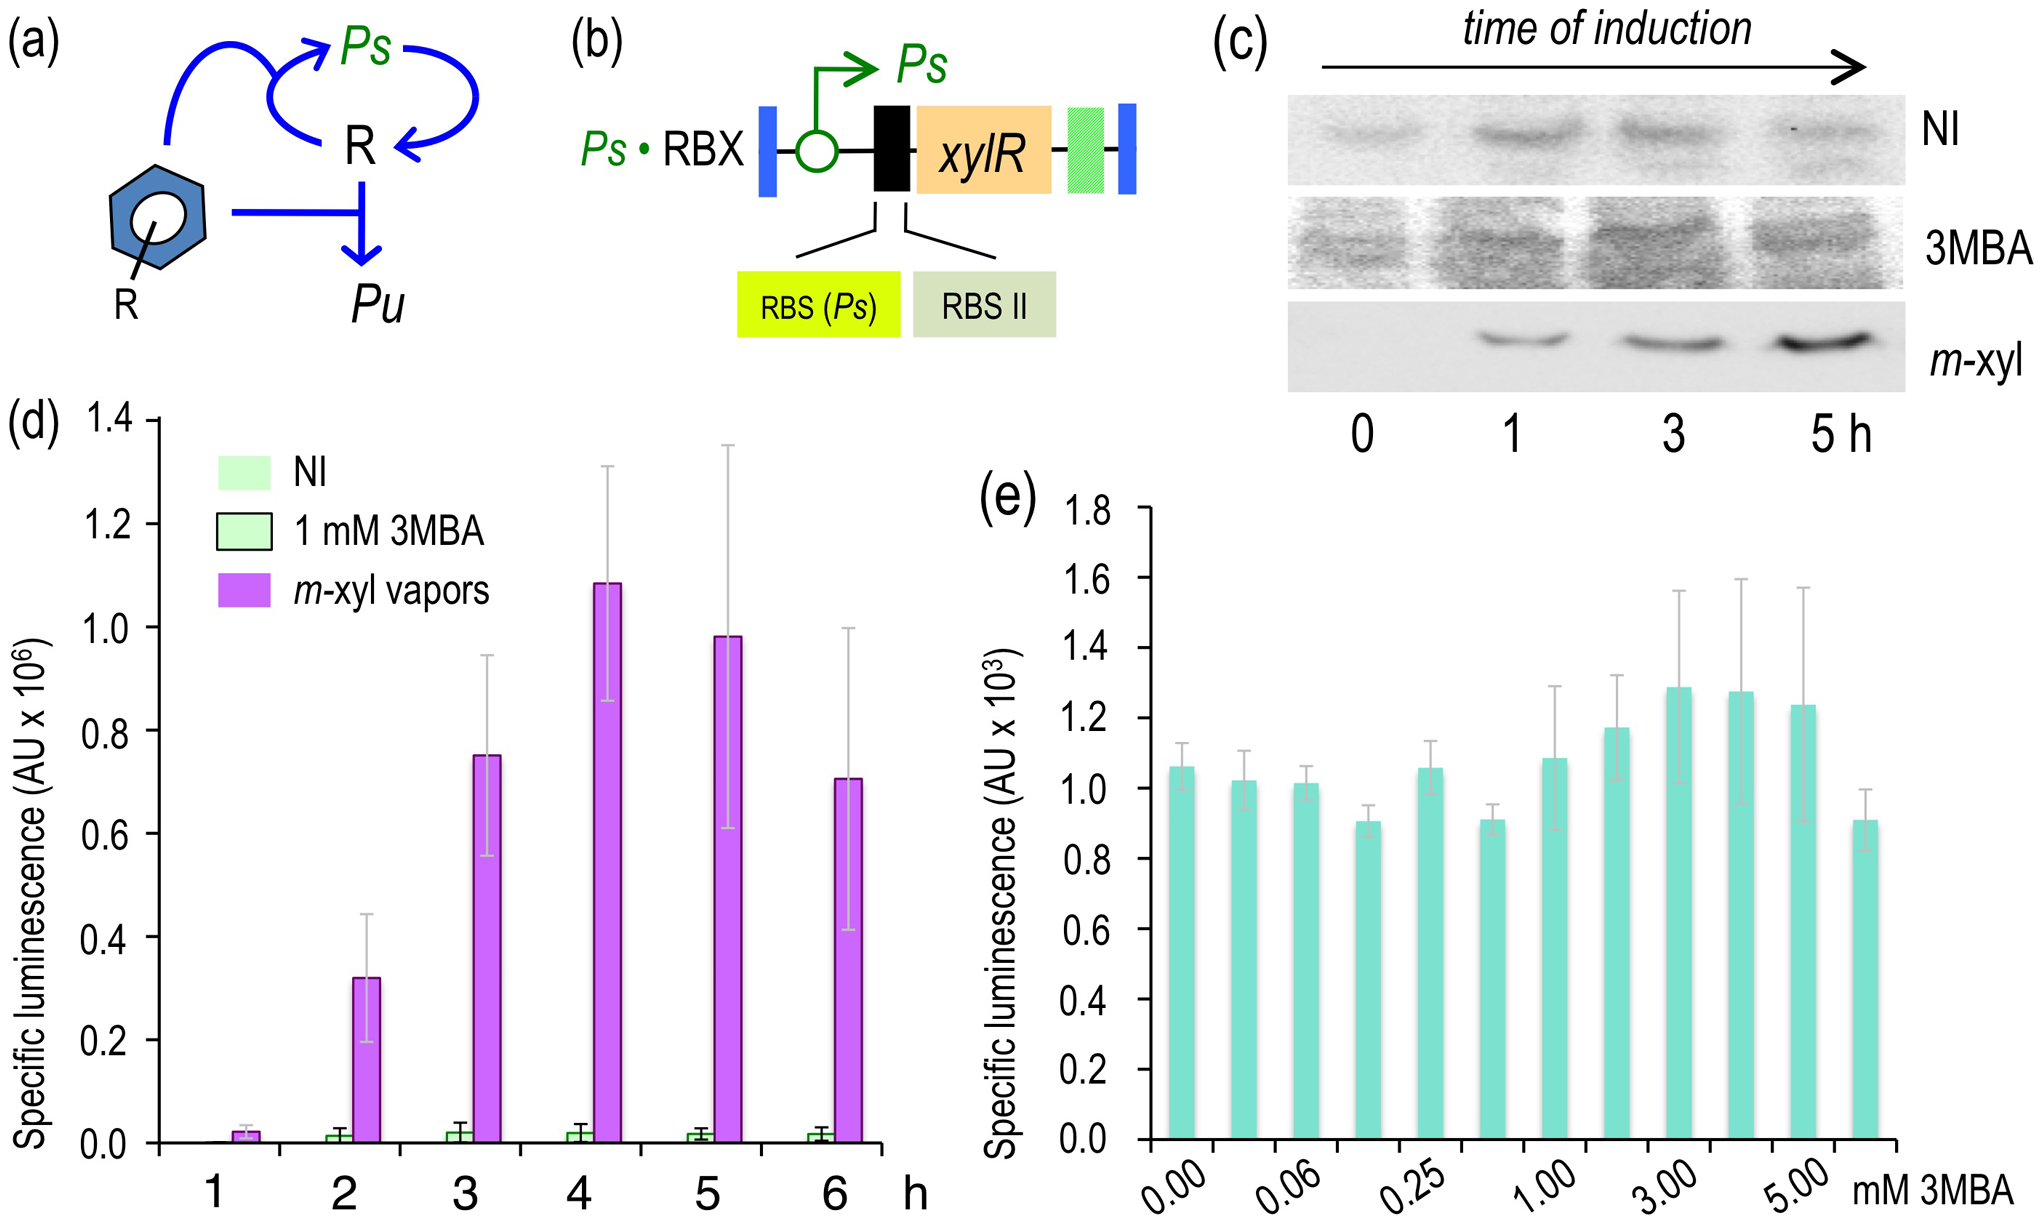 Induction of the XylR/<i>Pu</i> node in strains engineered with a <i>Ps</i>-PFL for <i>xylR</i> expression.